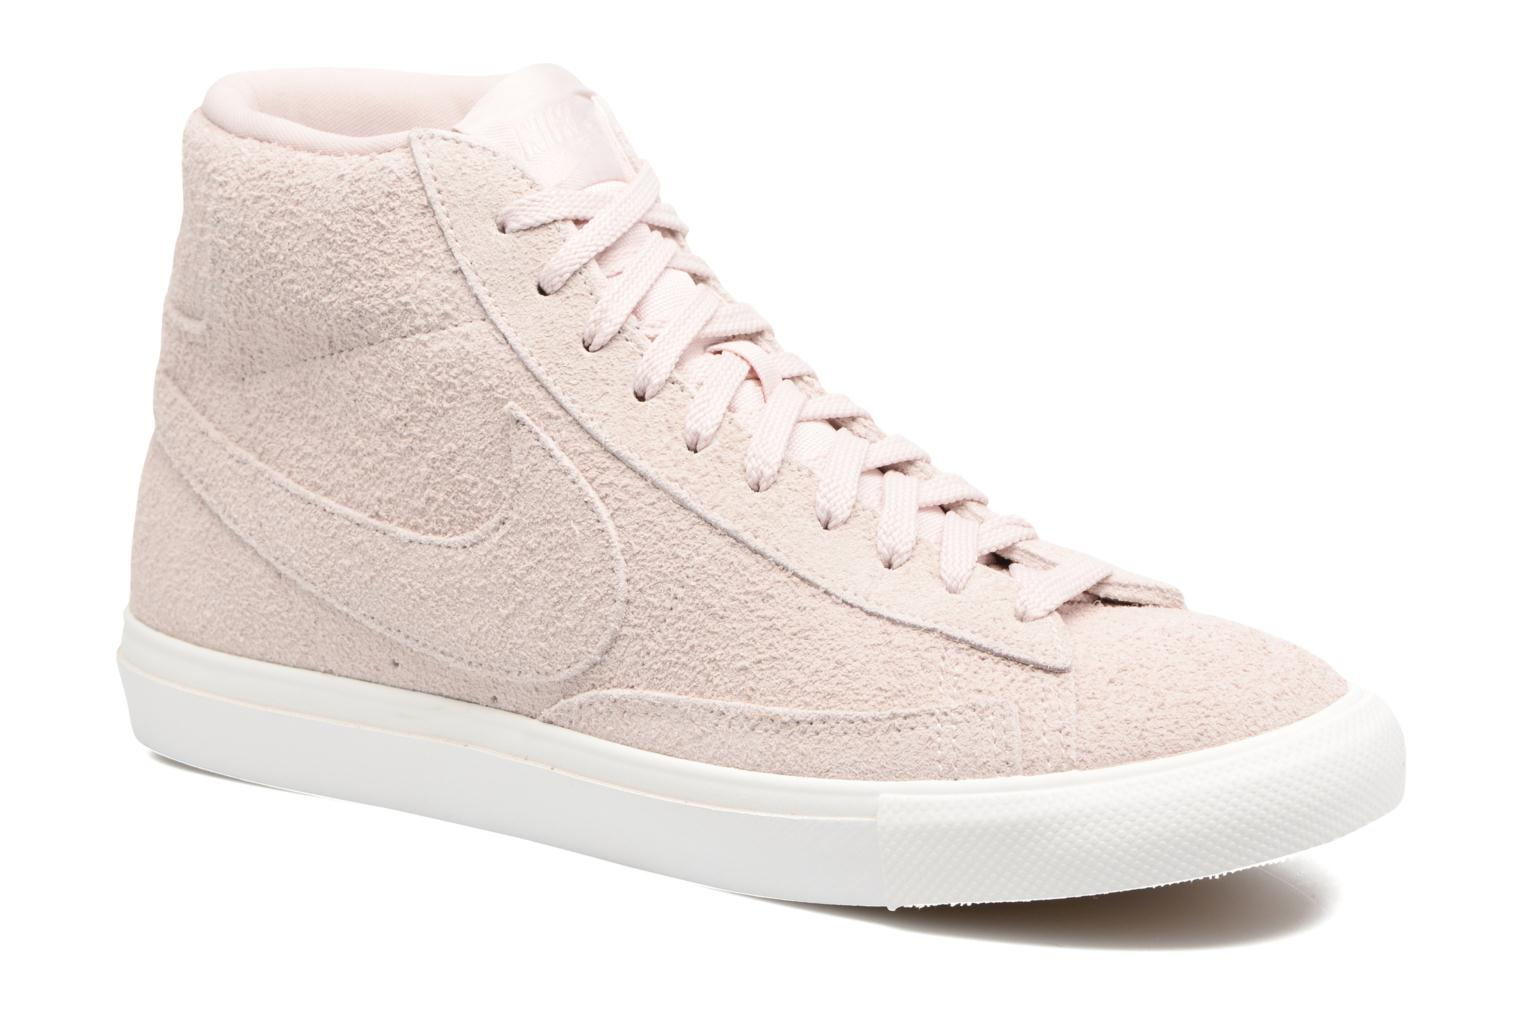 buy online 5ed71 e23a6 ... wholesale trainers nike blazer mid ah17 beige detailed view pair view  f5fb1 65f5a